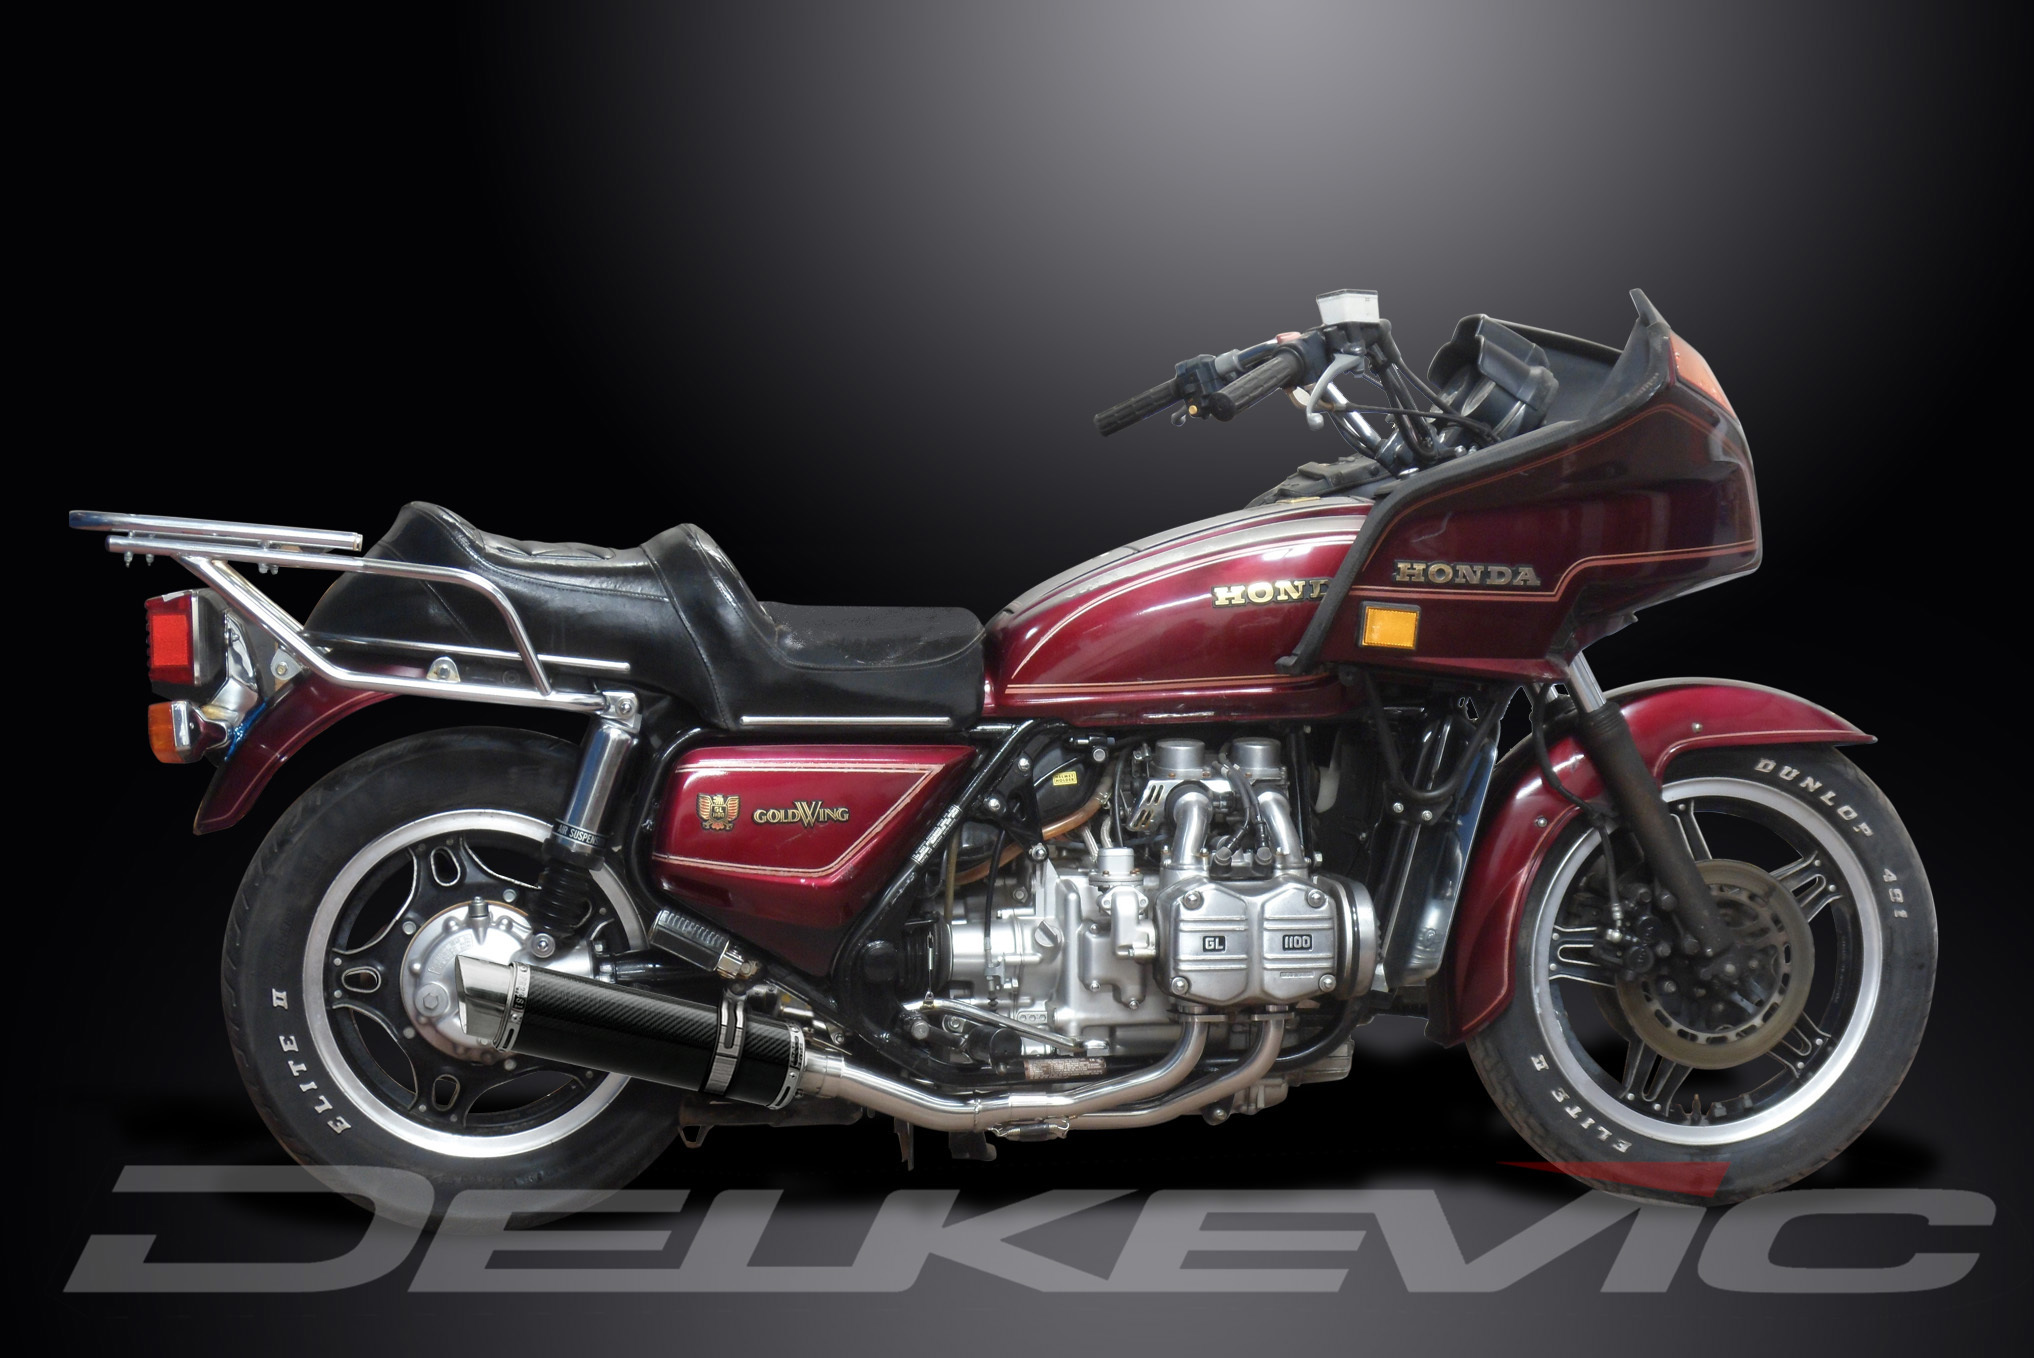 GL1000KZ Goldwing